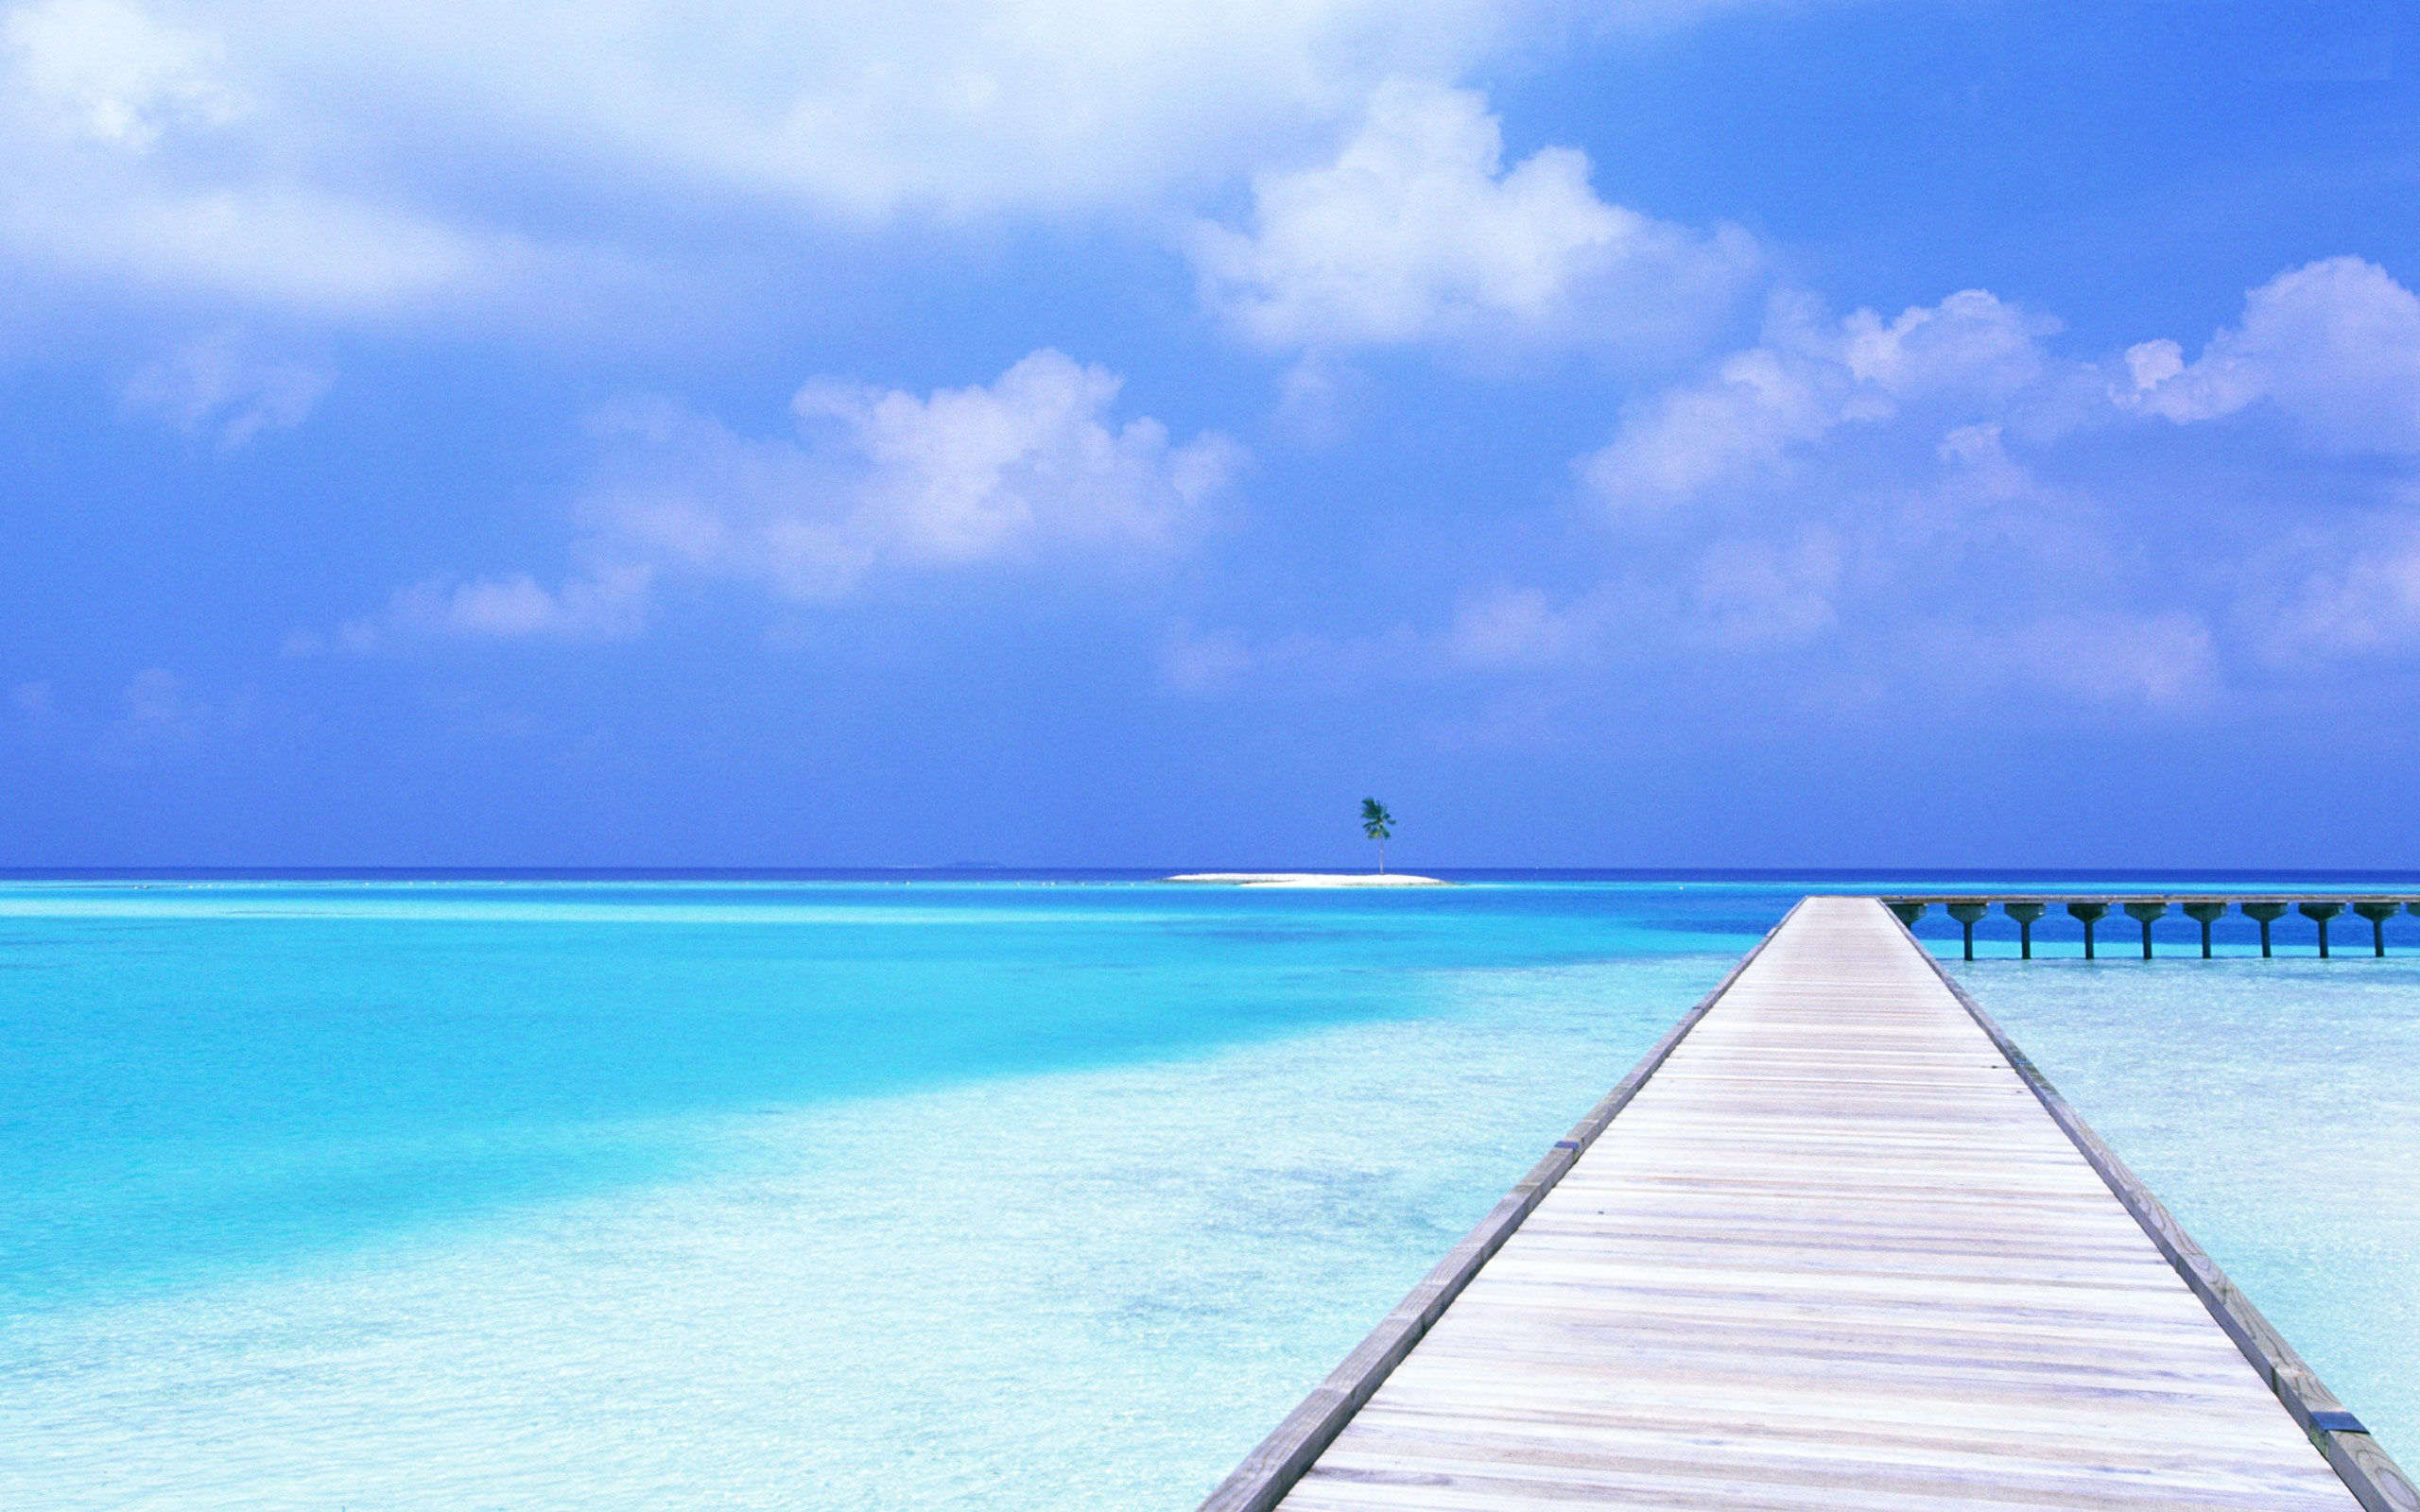 Crystal Blue Tropical Ocean Wallpaper Picture 2560x1600